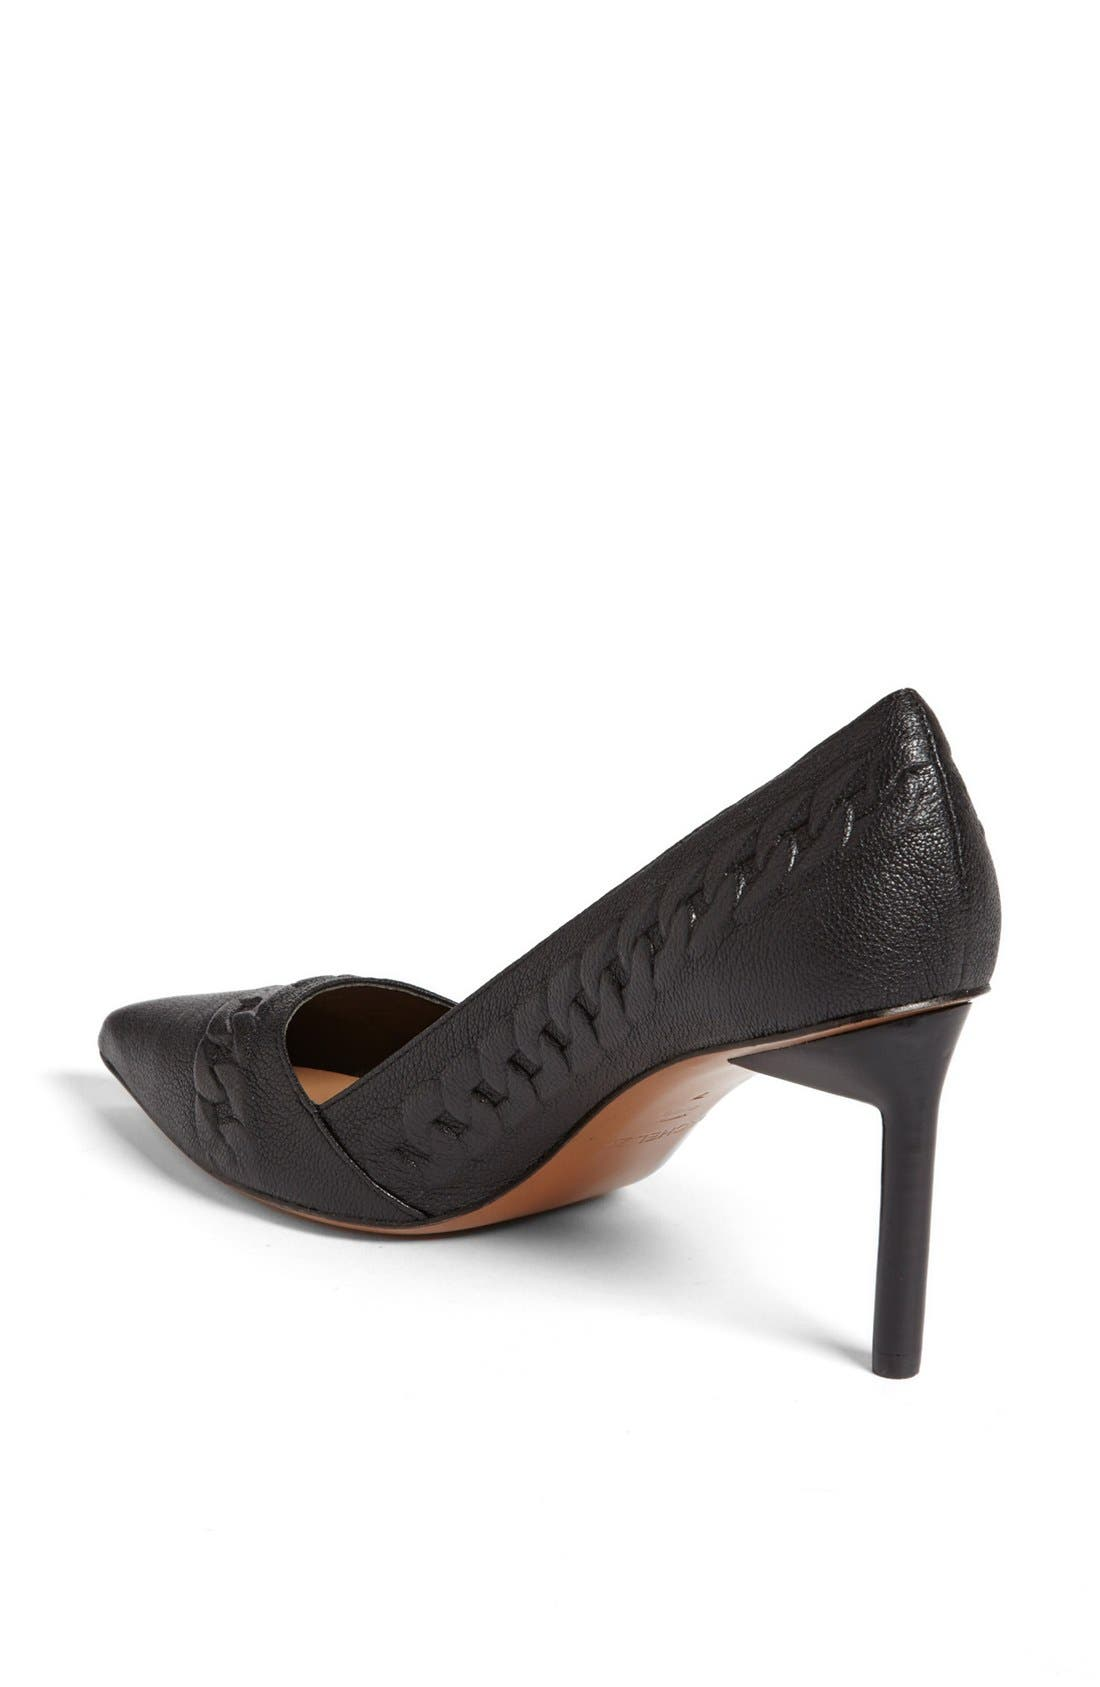 Alternate Image 2  - Rachel Zoe 'Kenley' Leather Pump